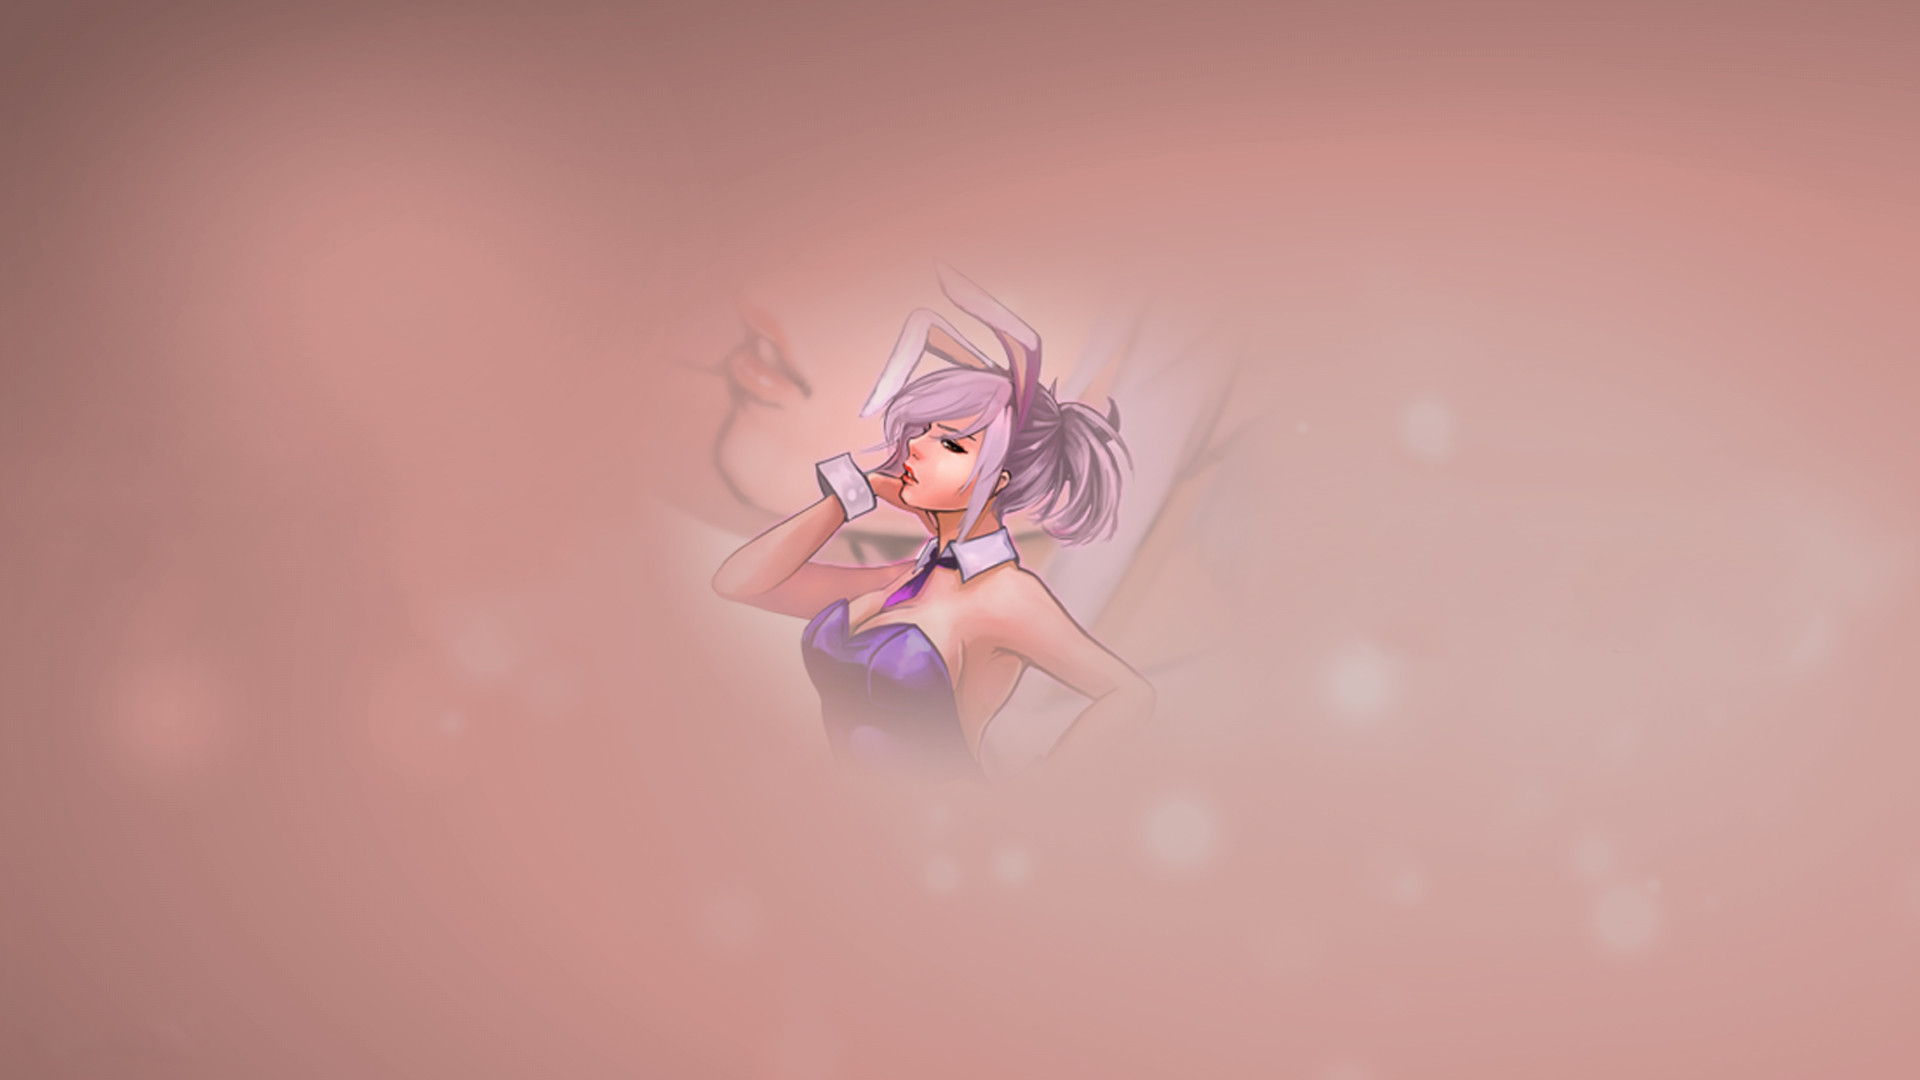 1920x1080 Battle Bunny Riven wallpaper